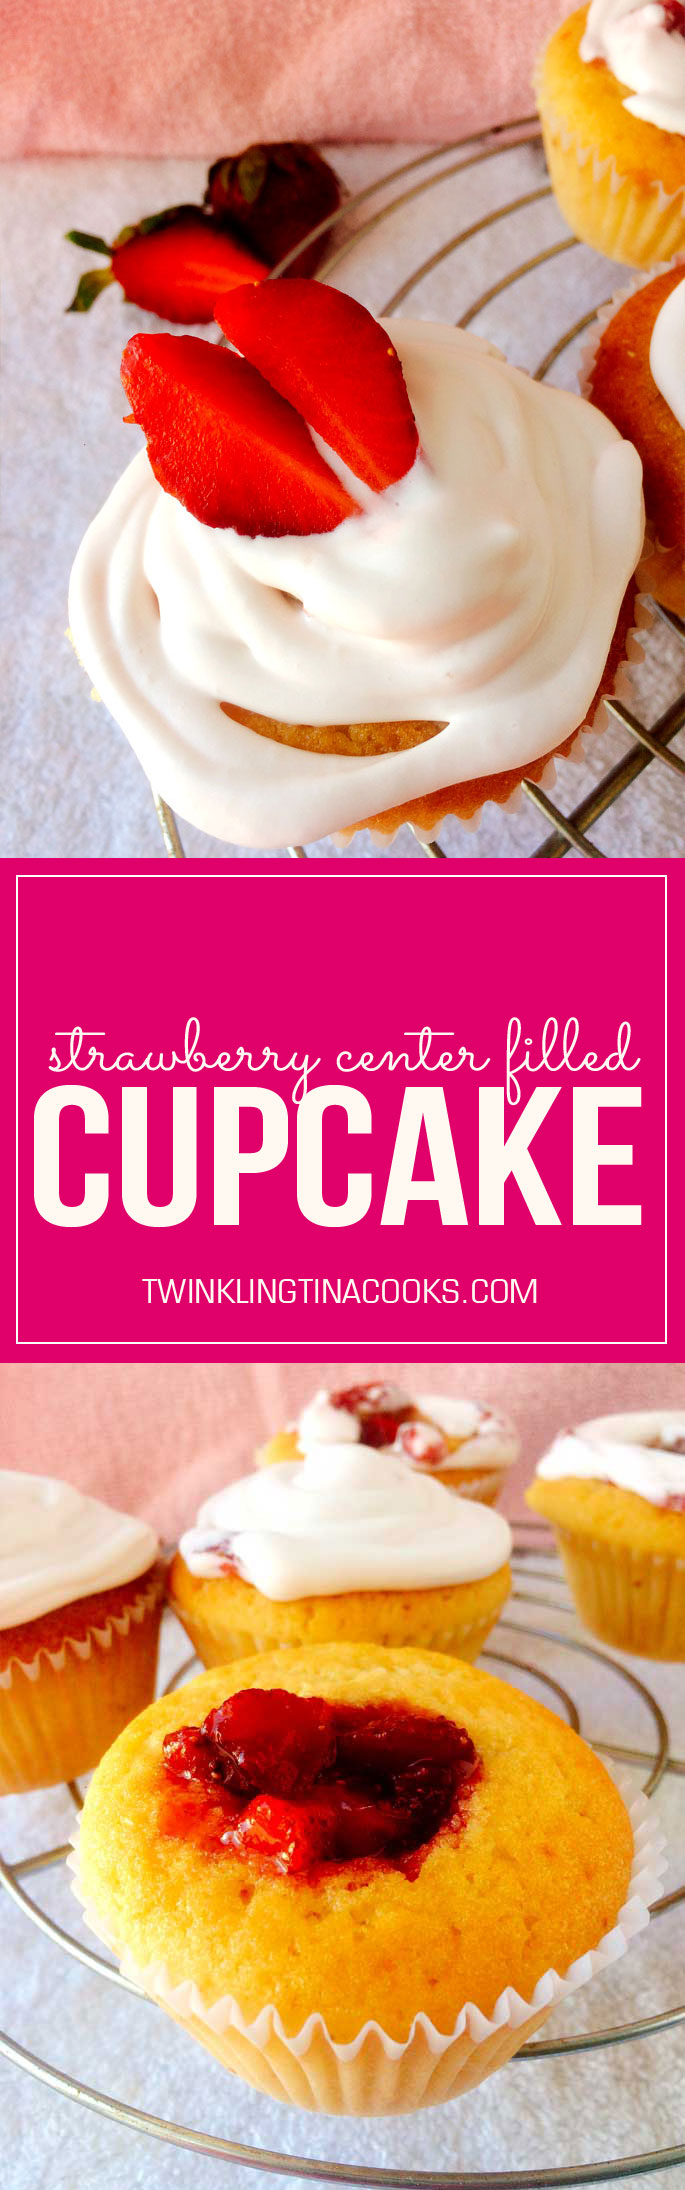 strawberry-center-filled-cupcake-with-fresh-strawberry-pin